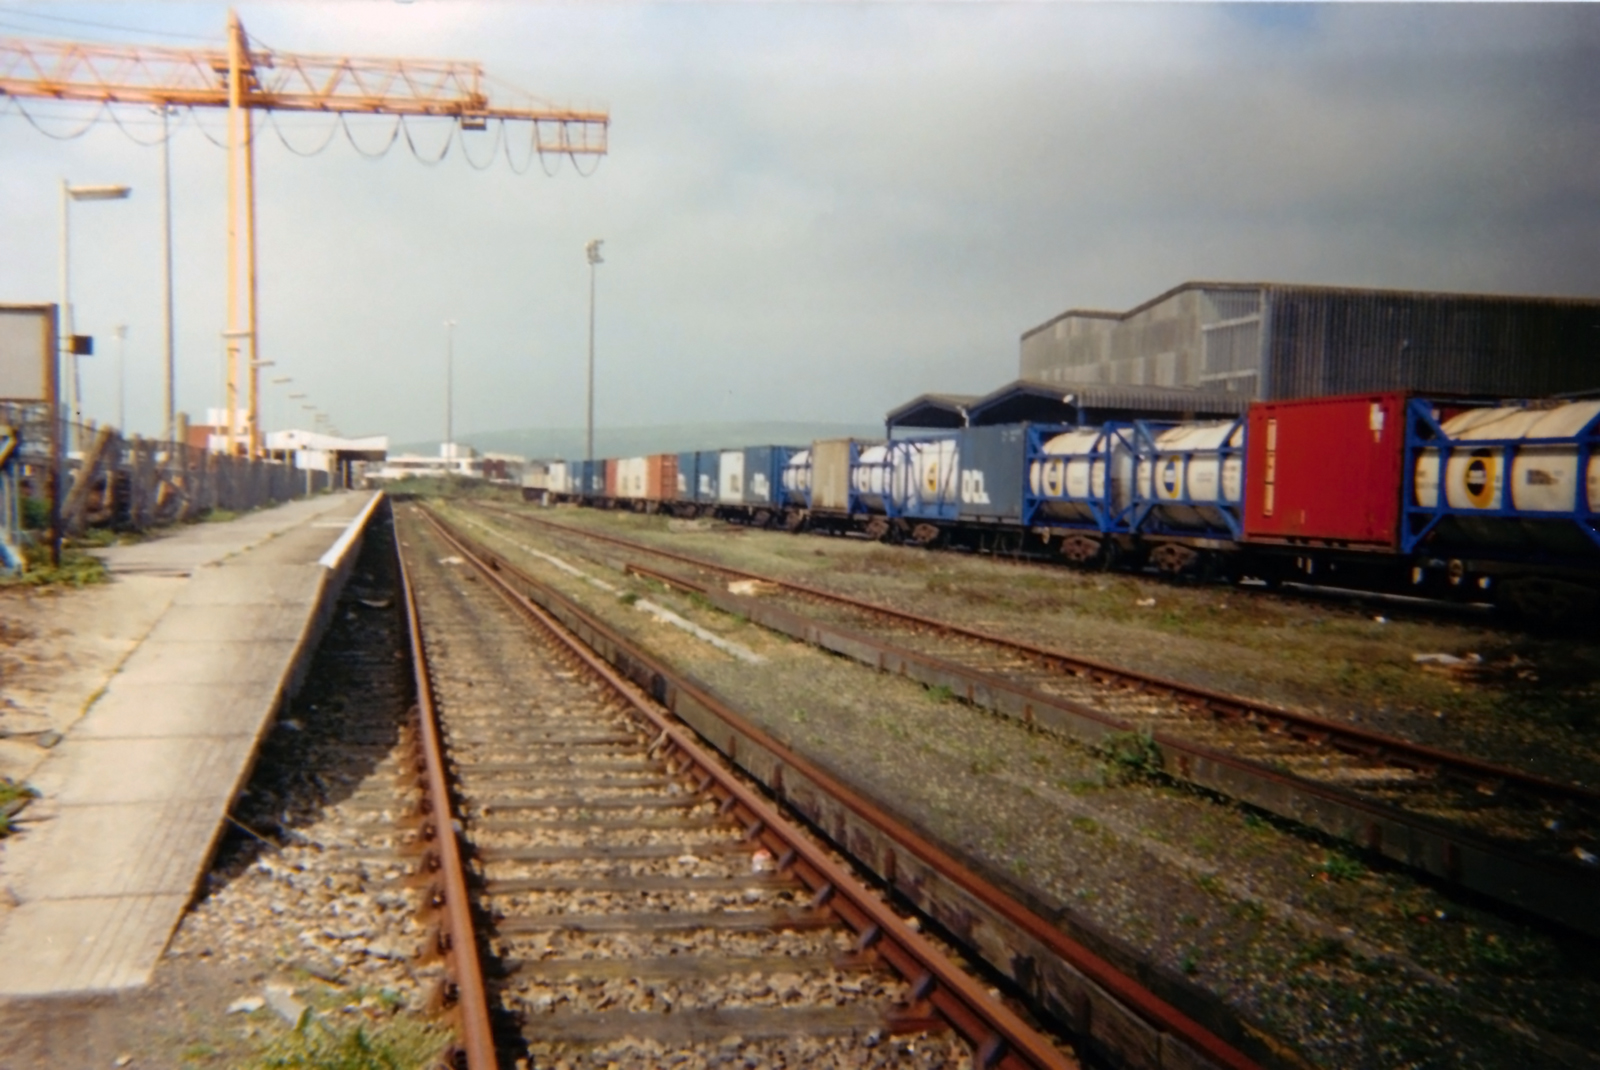 Newhaven 1990s